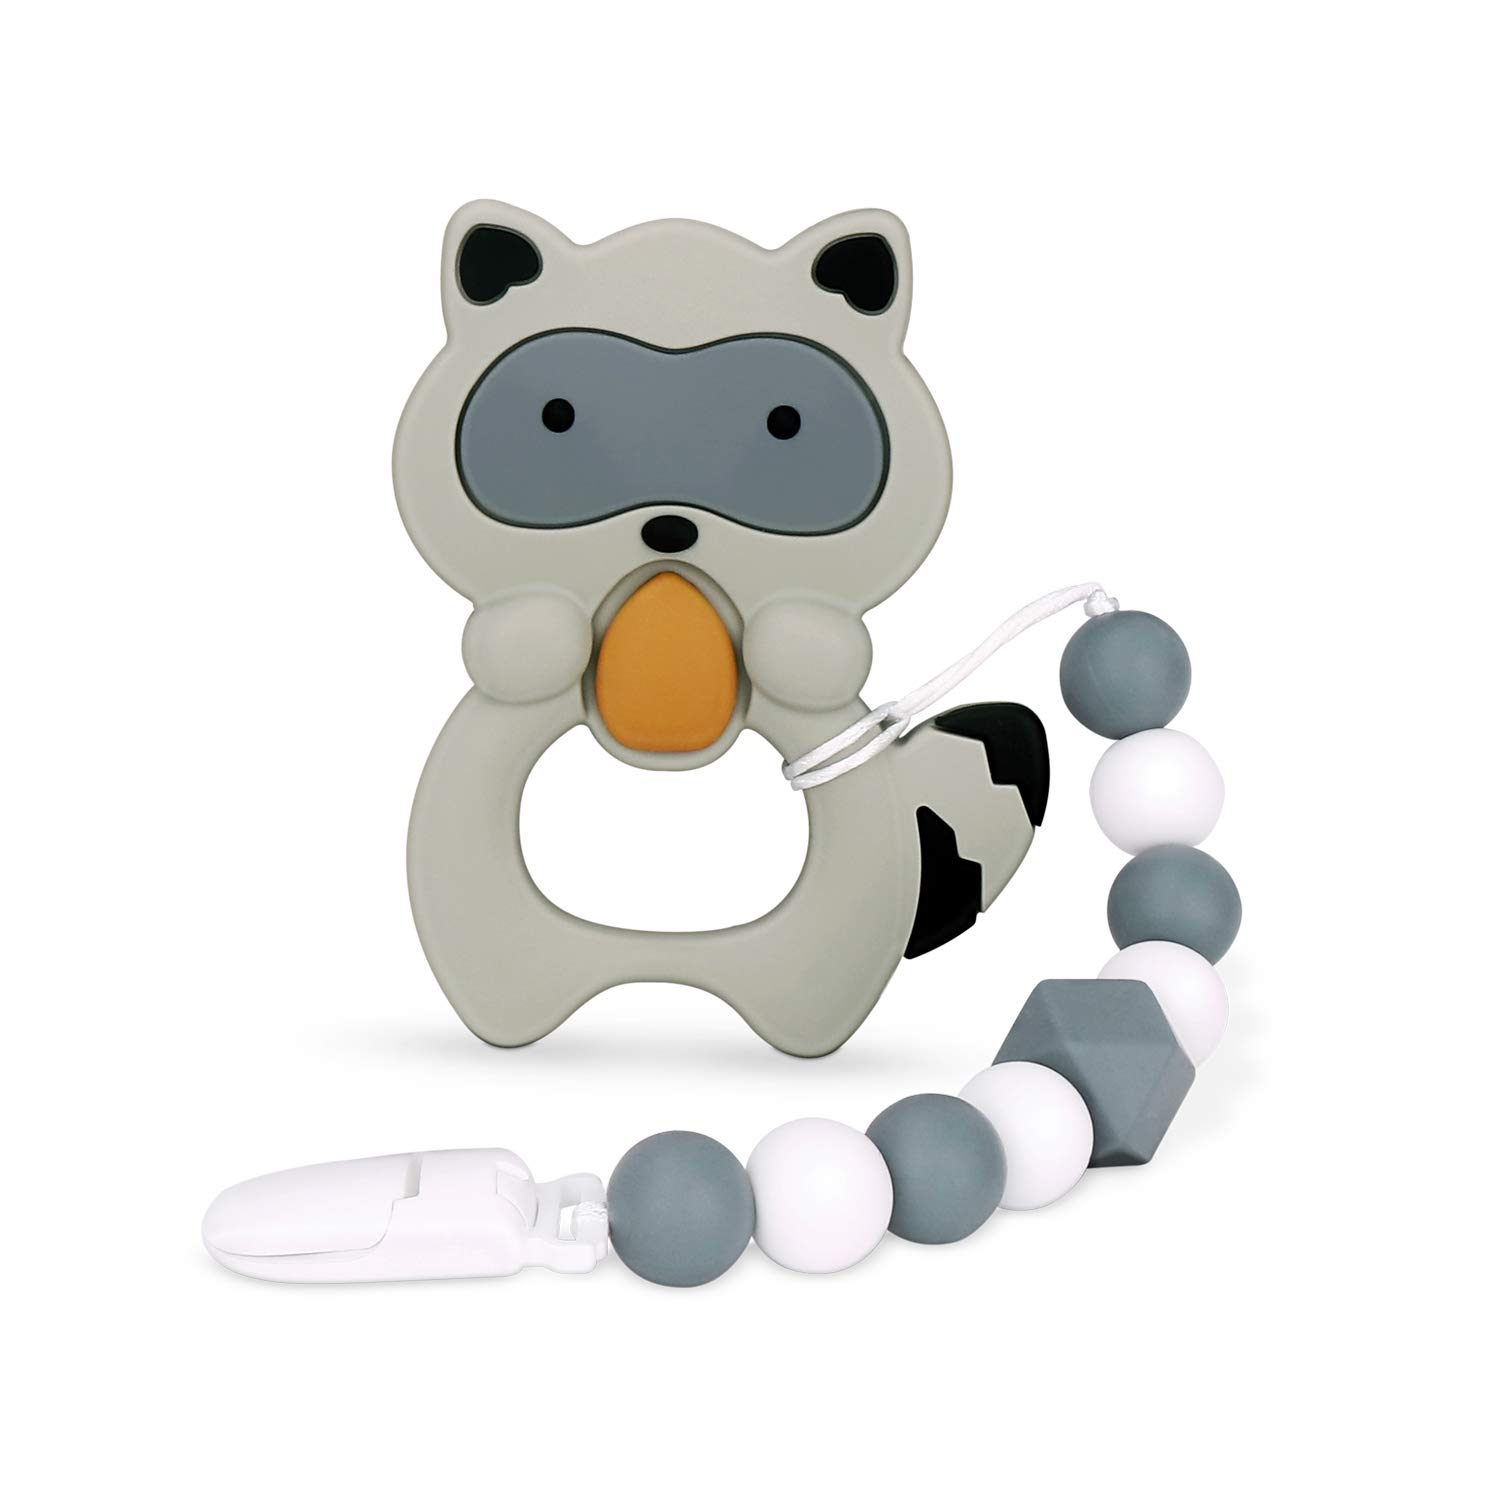 Teething Pain Relief Raccoon Yellow Best Newborn Shower Gifts for Trendy Boy or Girl Silicone Teether with Pacifier Clip Natural BPA Free Raccoon for Freezer moopok Baby Teething Toys